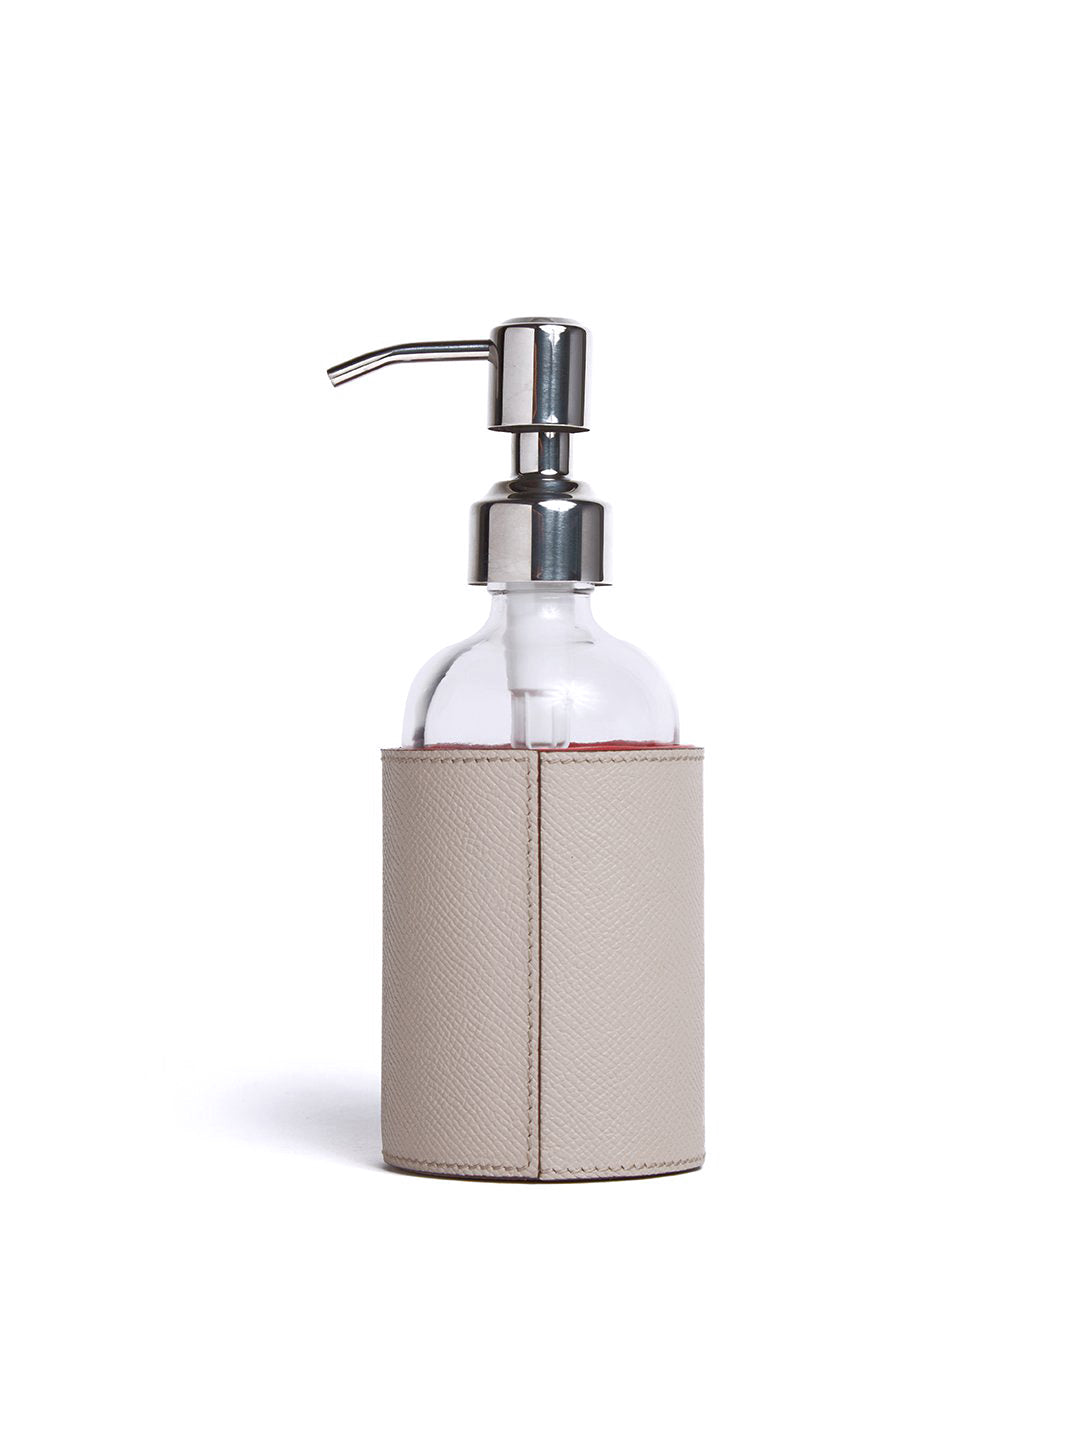 Recycled Glass Sanitizer Bottle with Leather Holder